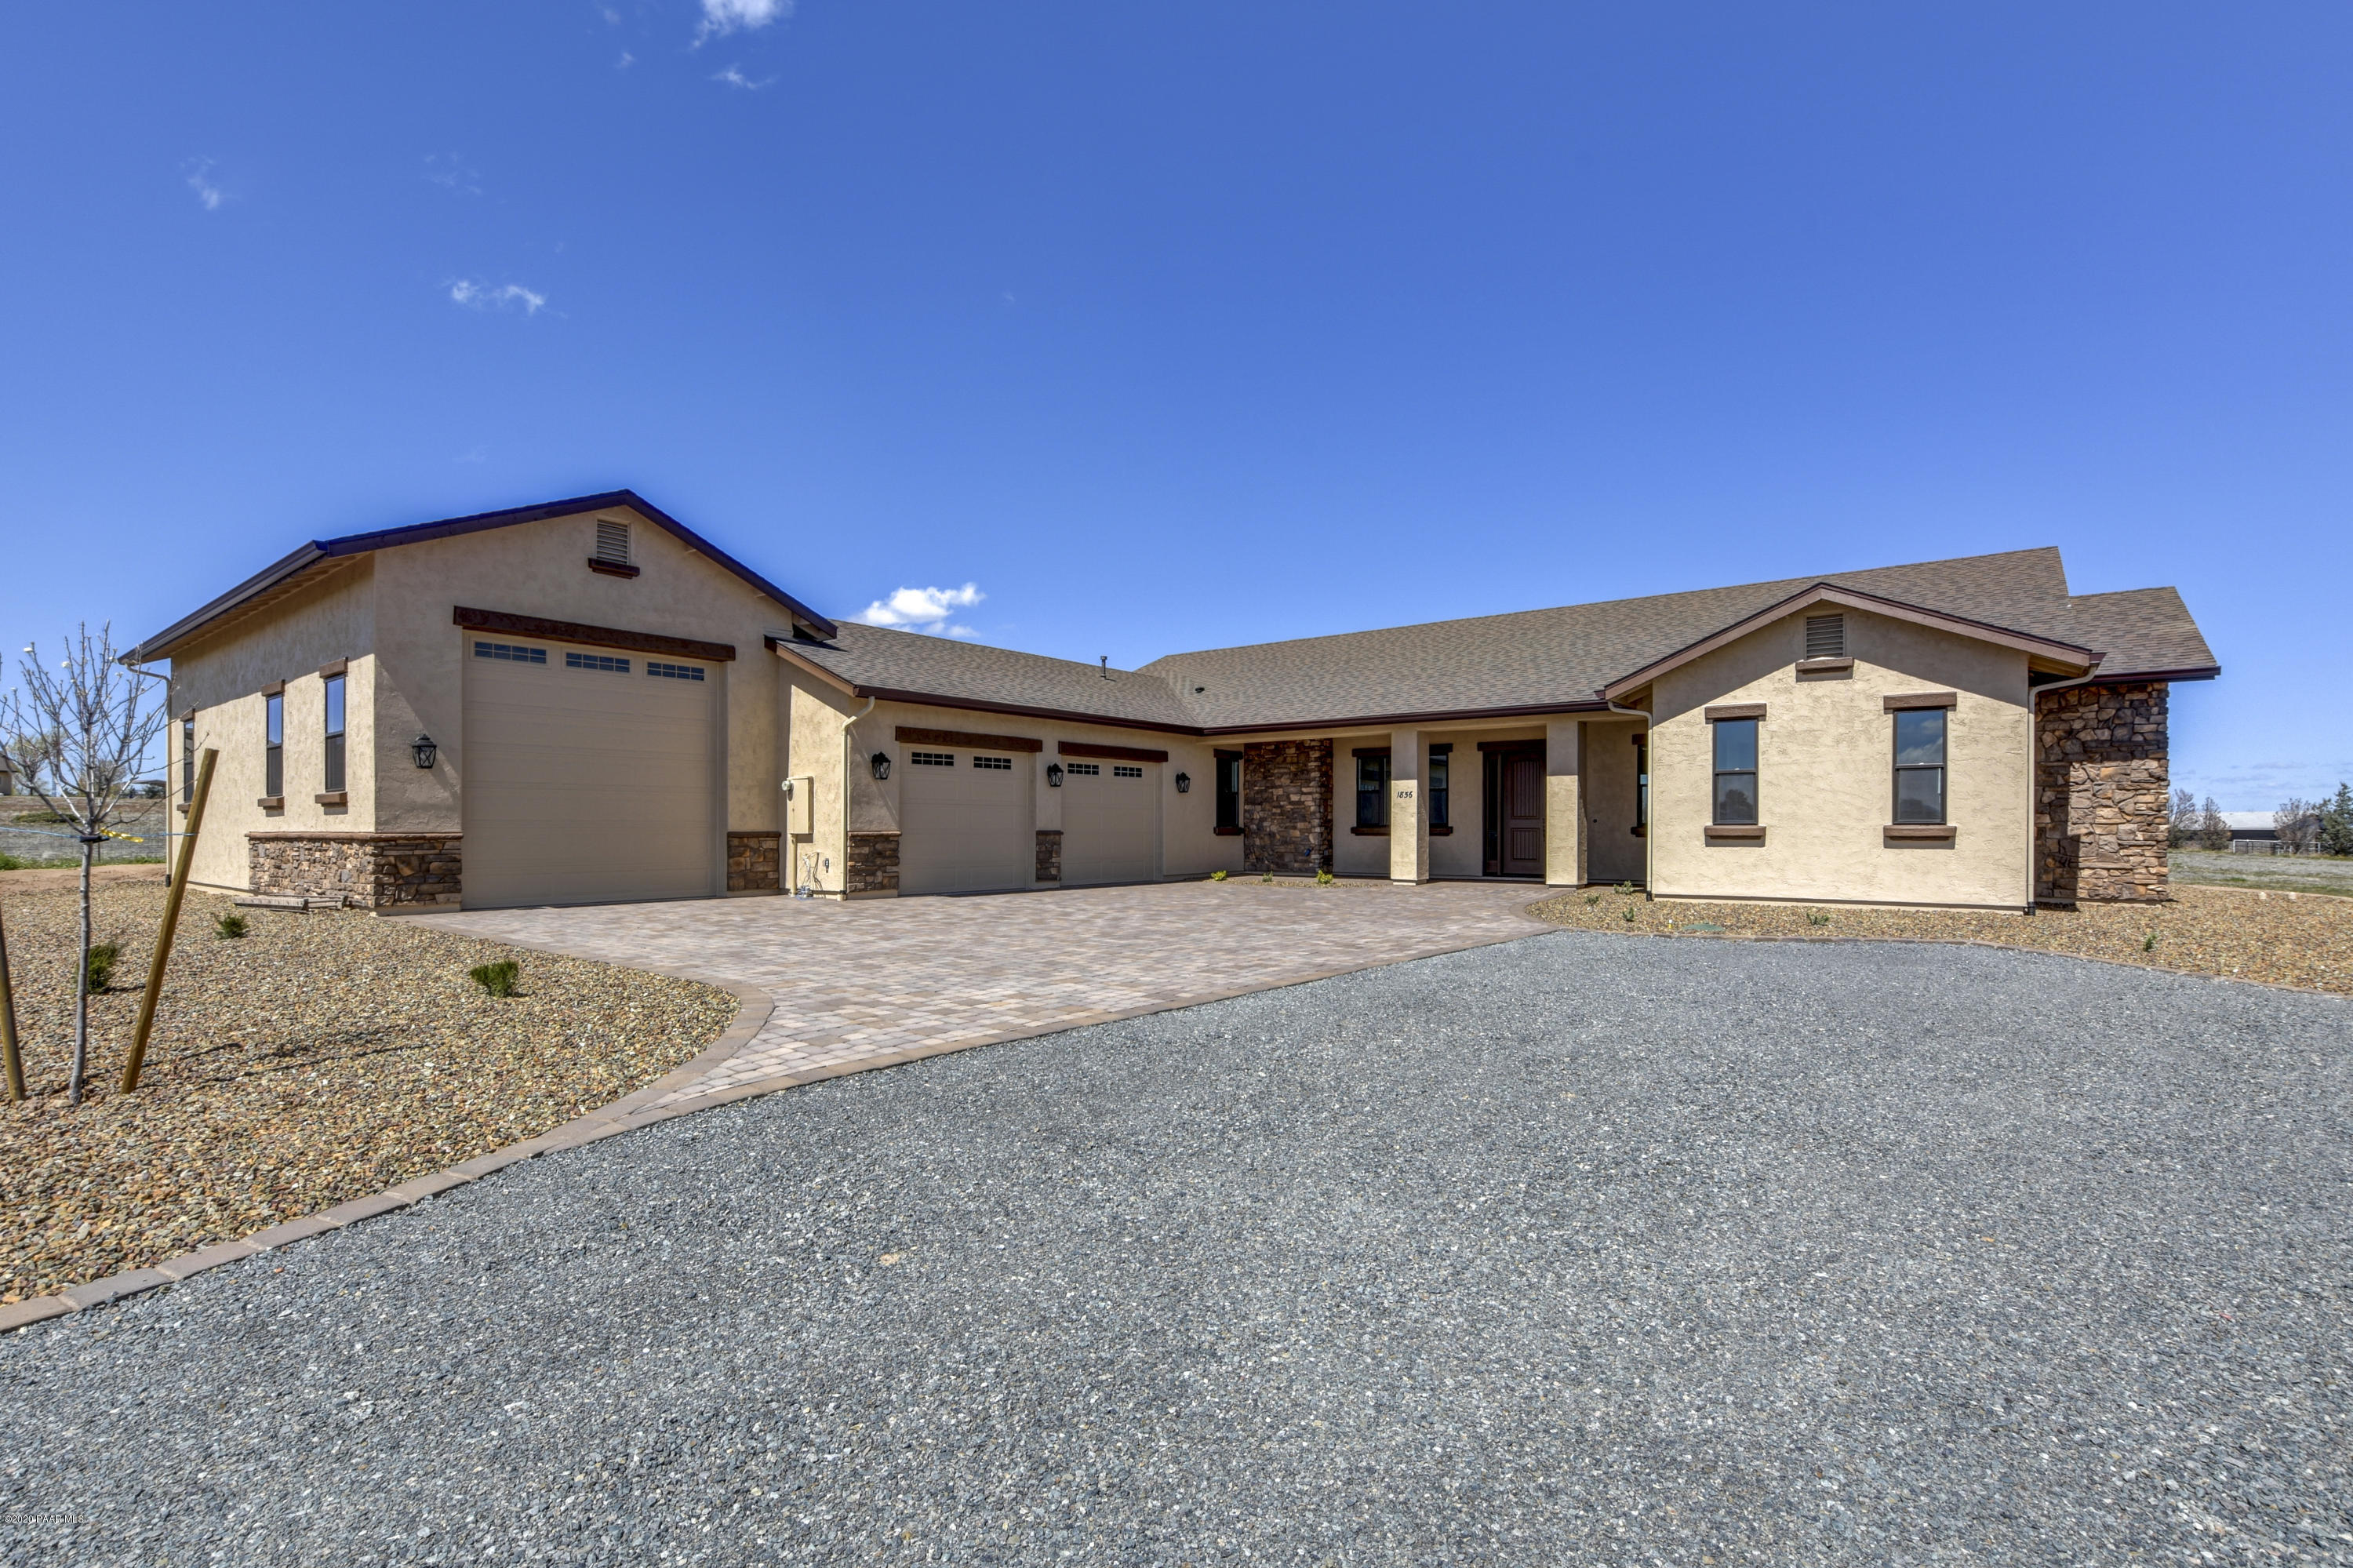 Photo of 1856 Rd 1 South, Chino Valley, AZ 86323